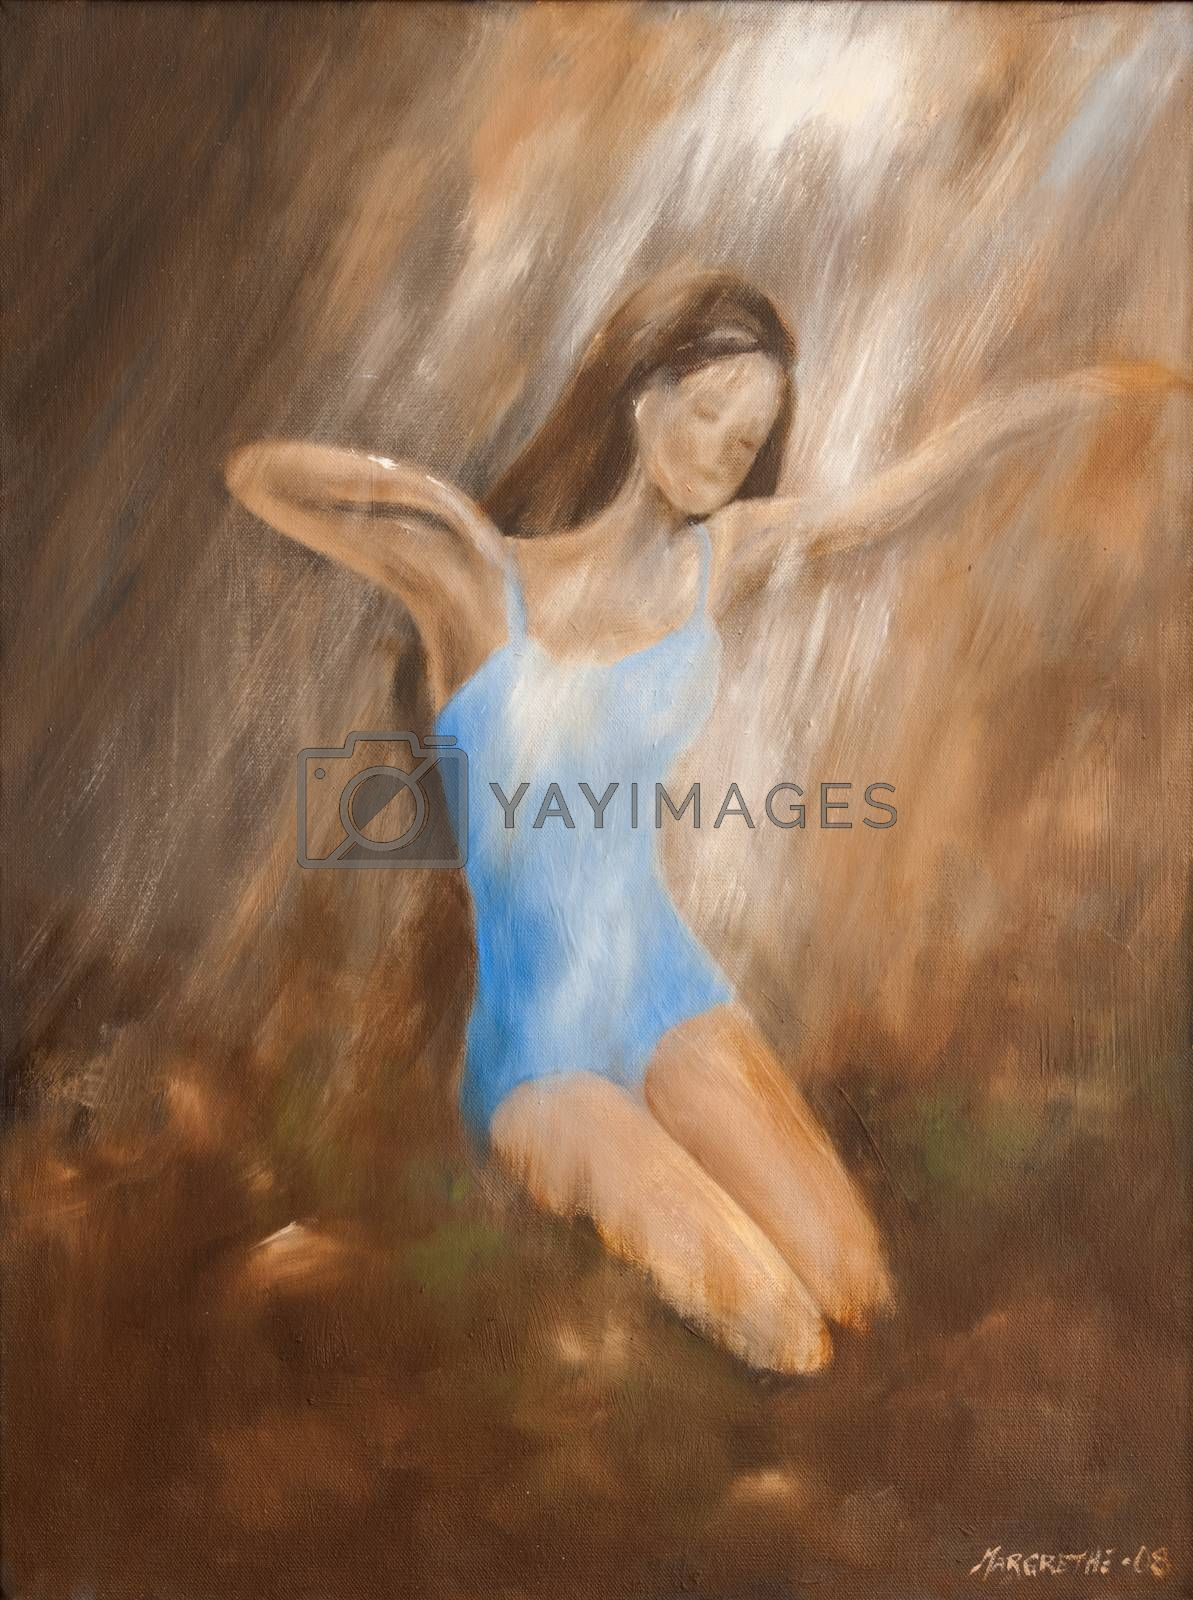 A beach scenery with a young woman in blue bathing suit sunbathing woman. A girl is stretching in the light. Oil painting on canvas. Summer landscape. Painted figurative art with oil on canvas.